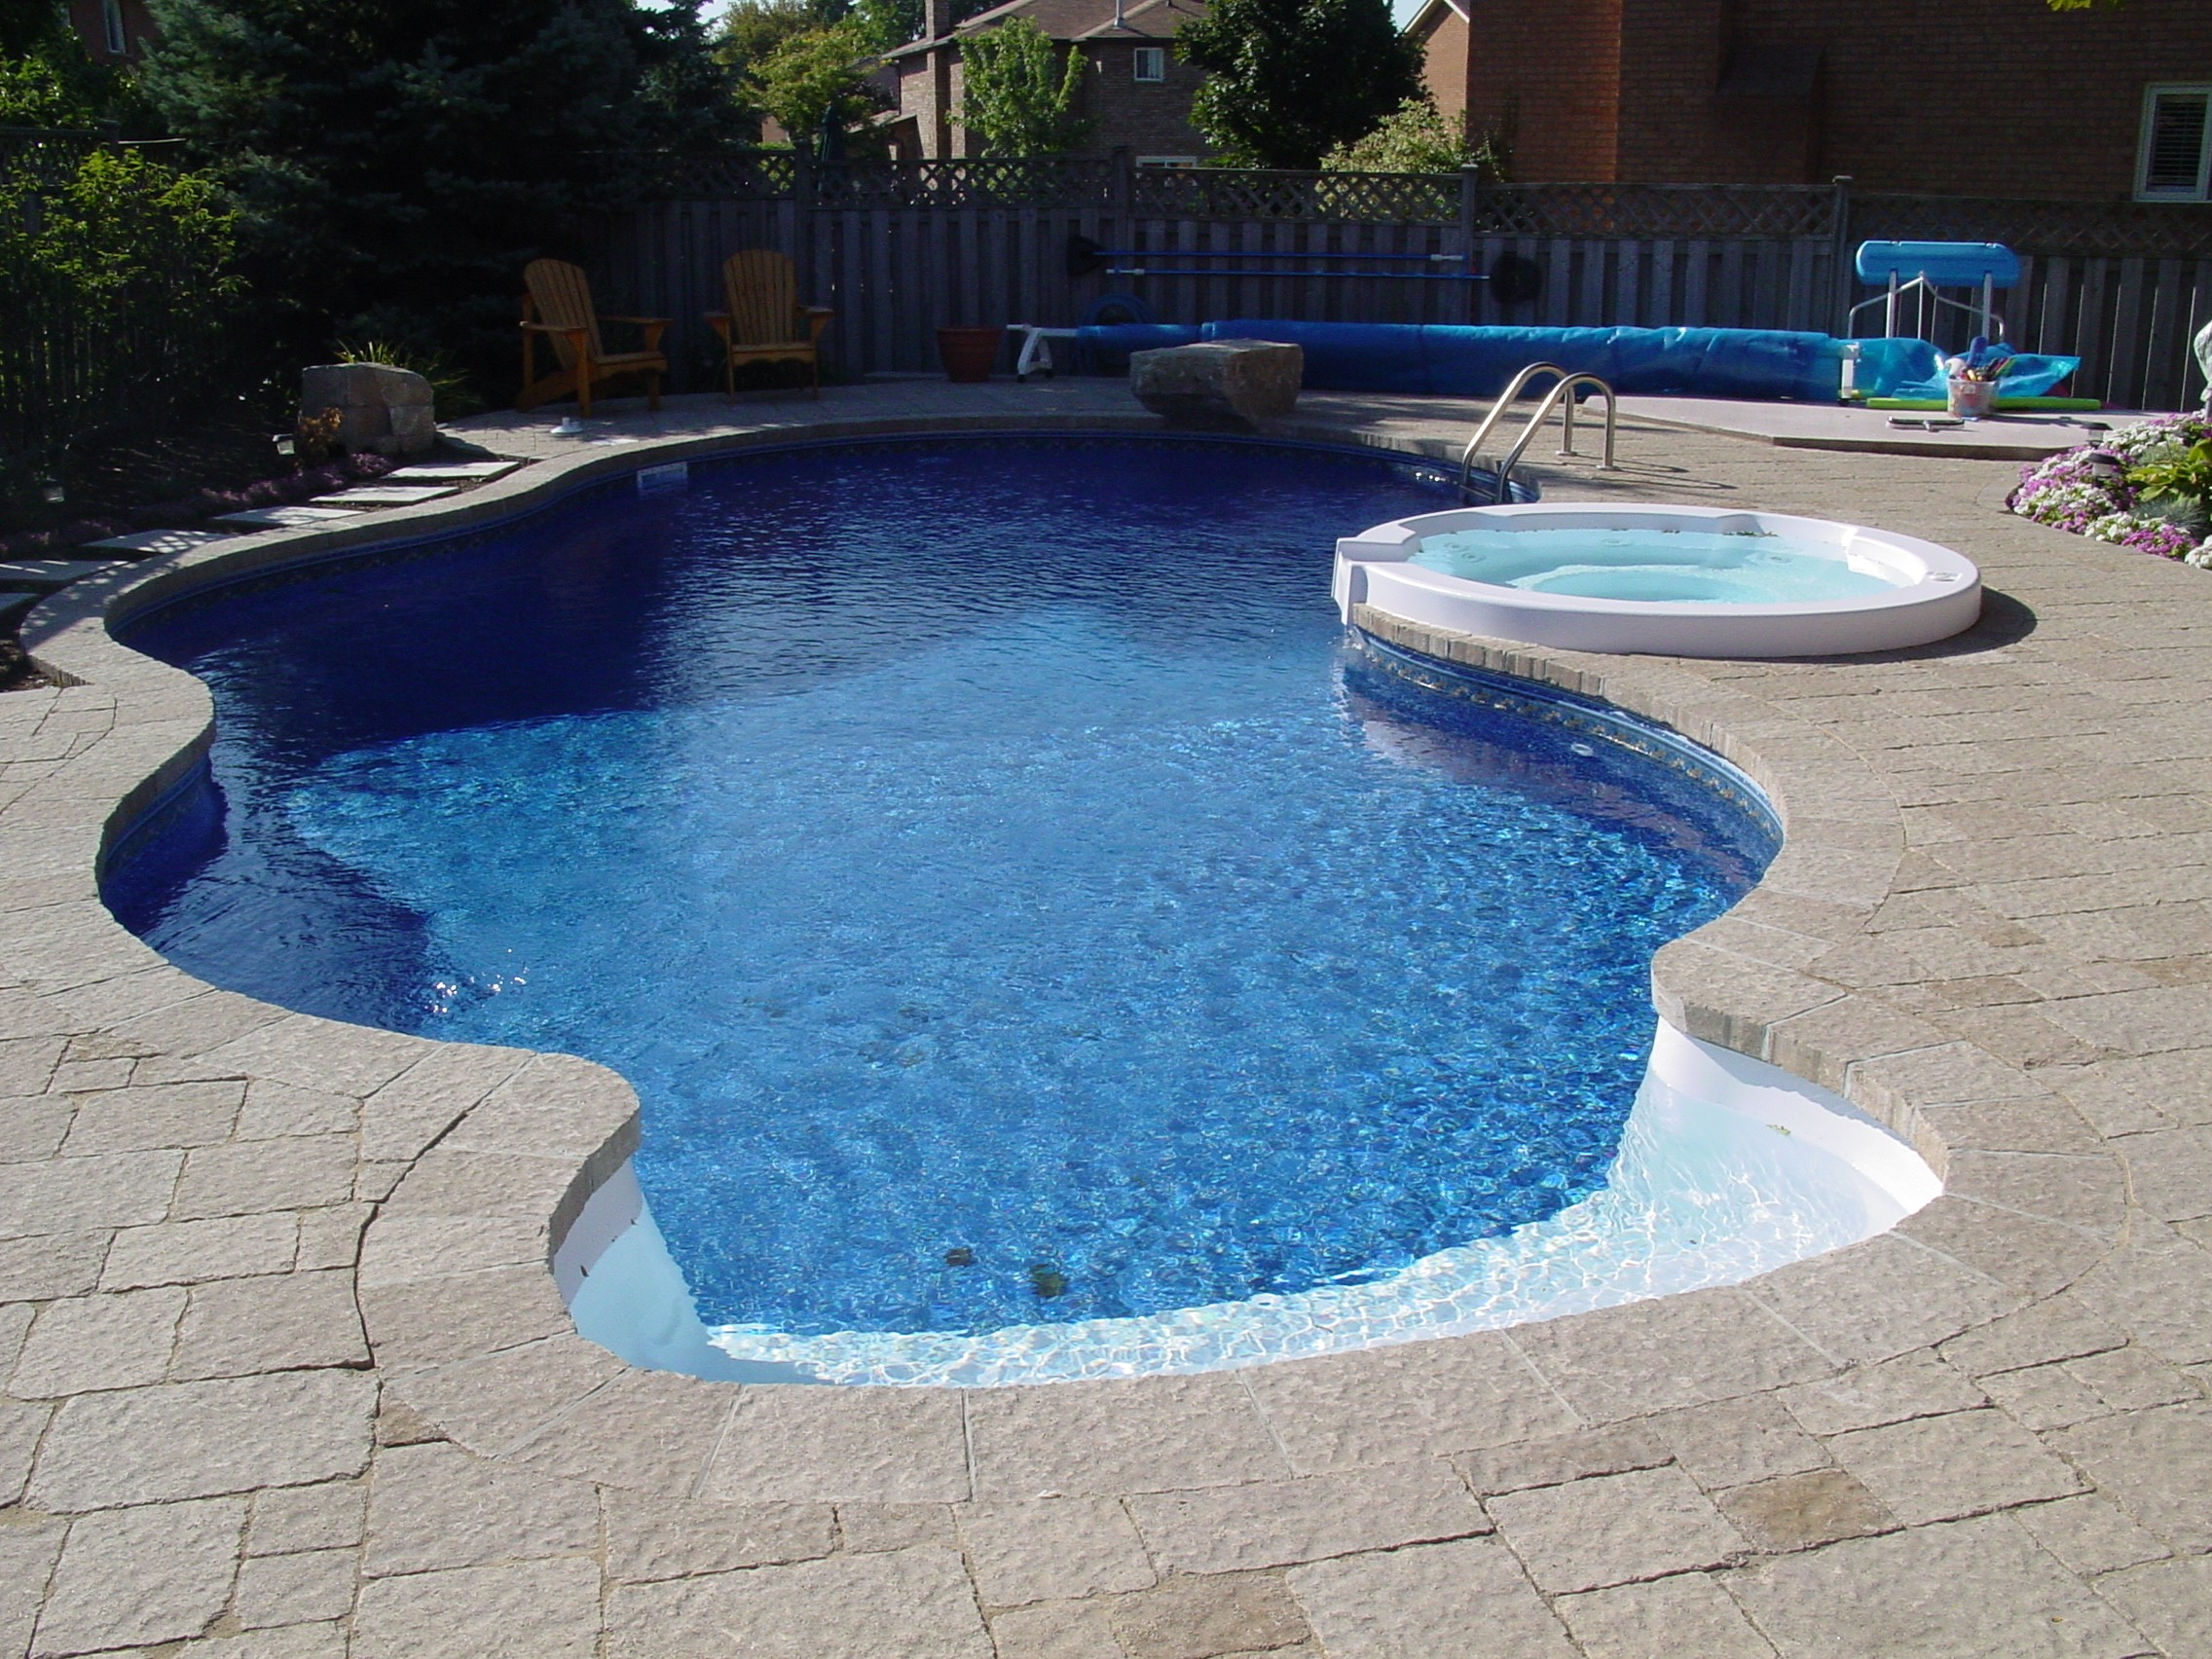 Pool Liners For Inground Pools